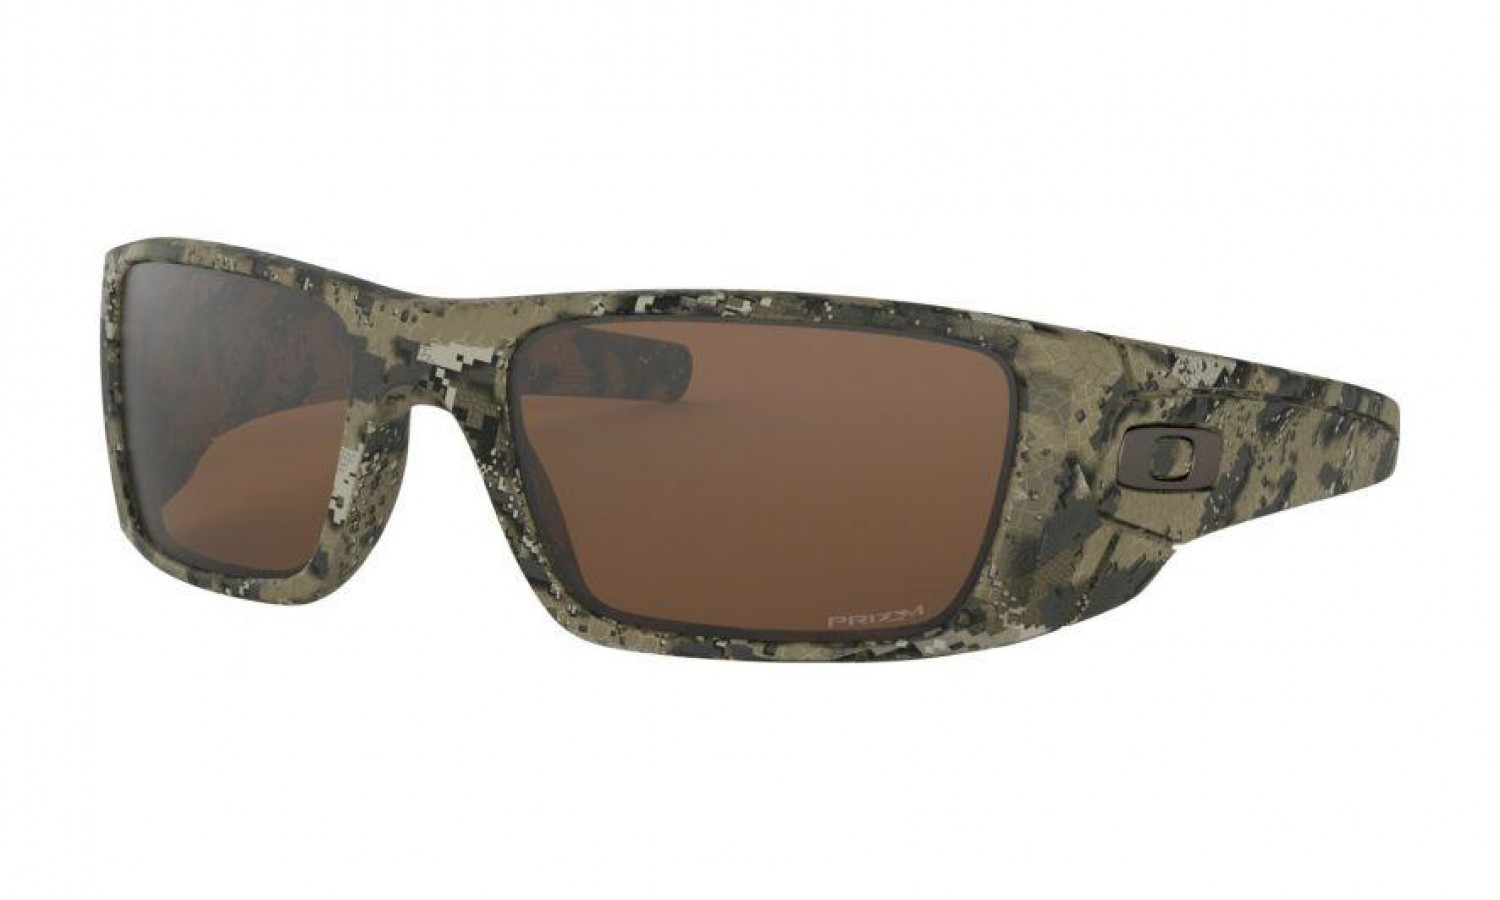 8e5f048b2c89 Oakley Prescription Fuel Cell Sunglasses | ADS Eyewear